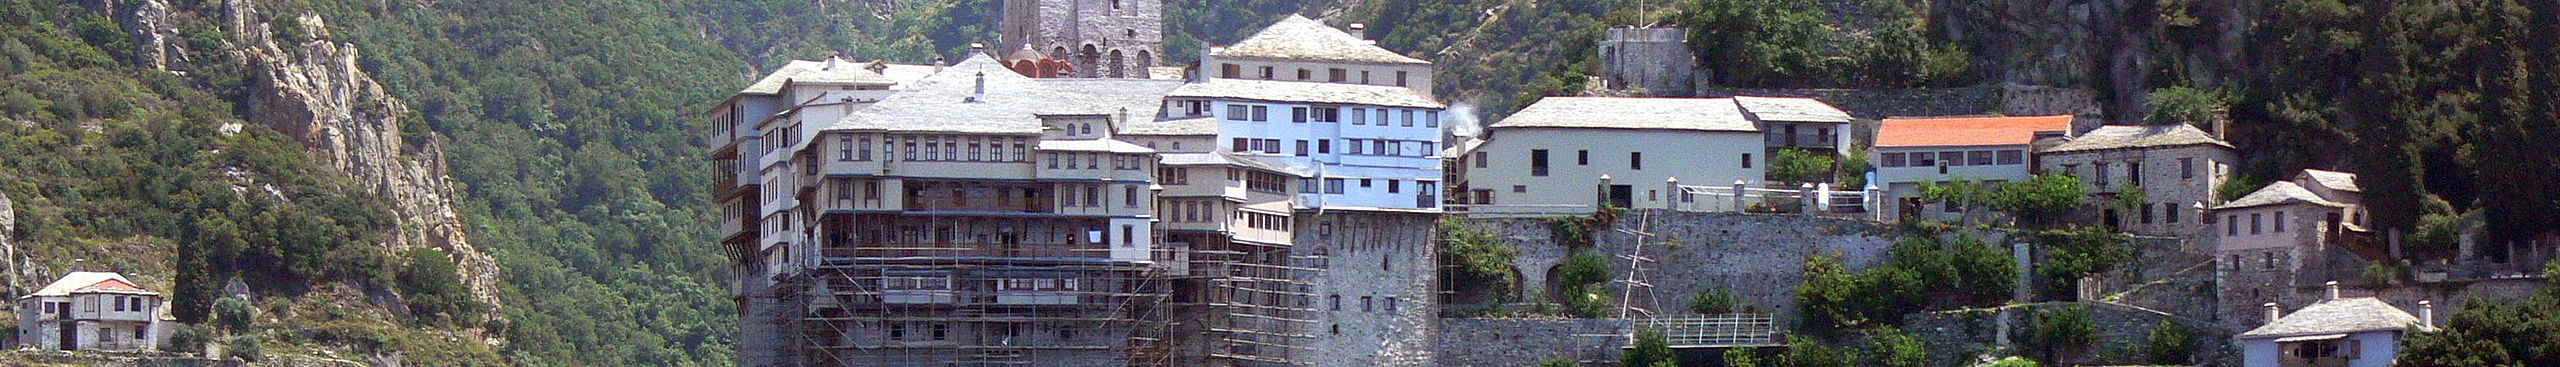 Mount Athos Travel guide at Wikivoyage